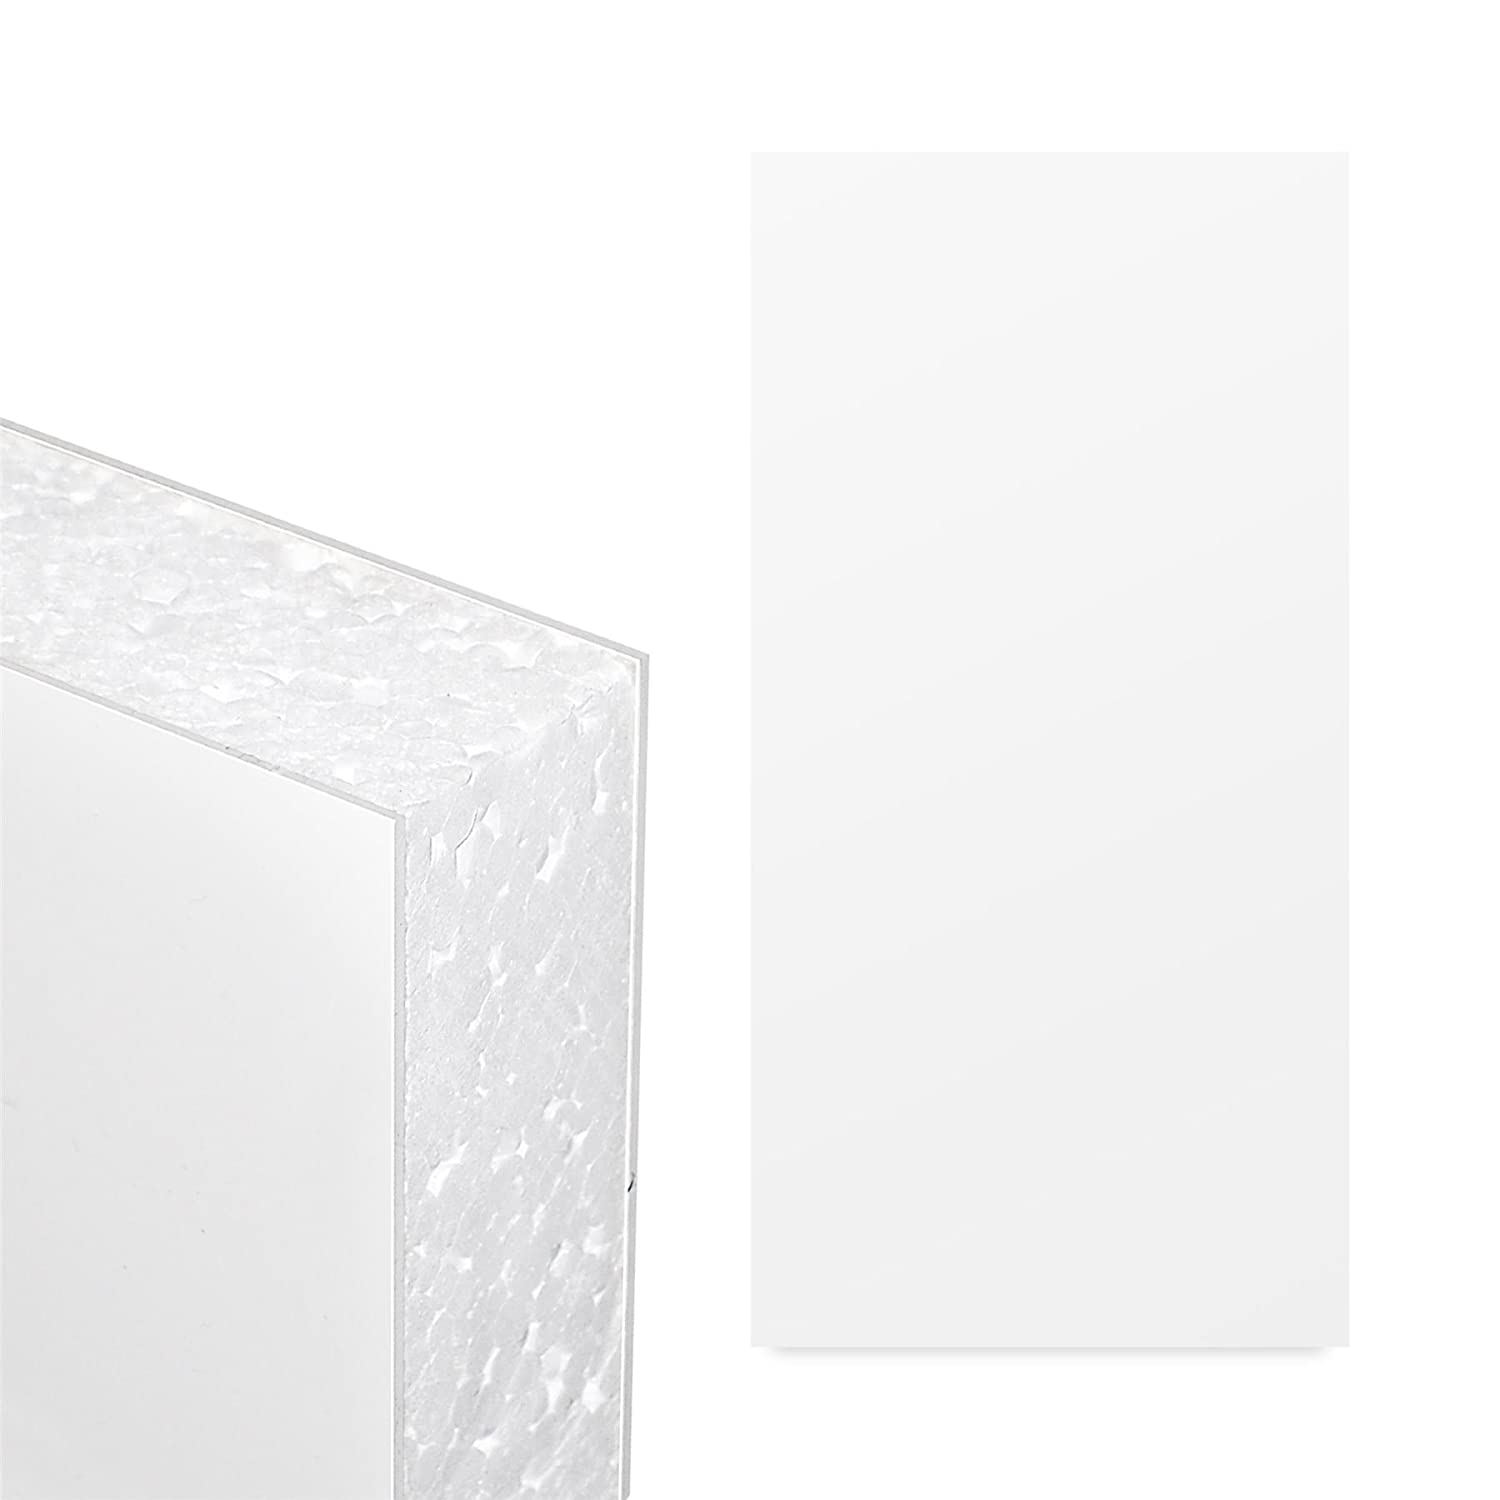 White UPVC Flat Door Panel (W: 1500mm x H: 750mm x D: 28mm) 28mm Thick Plastic Foam Filled Truly PVC Supplies